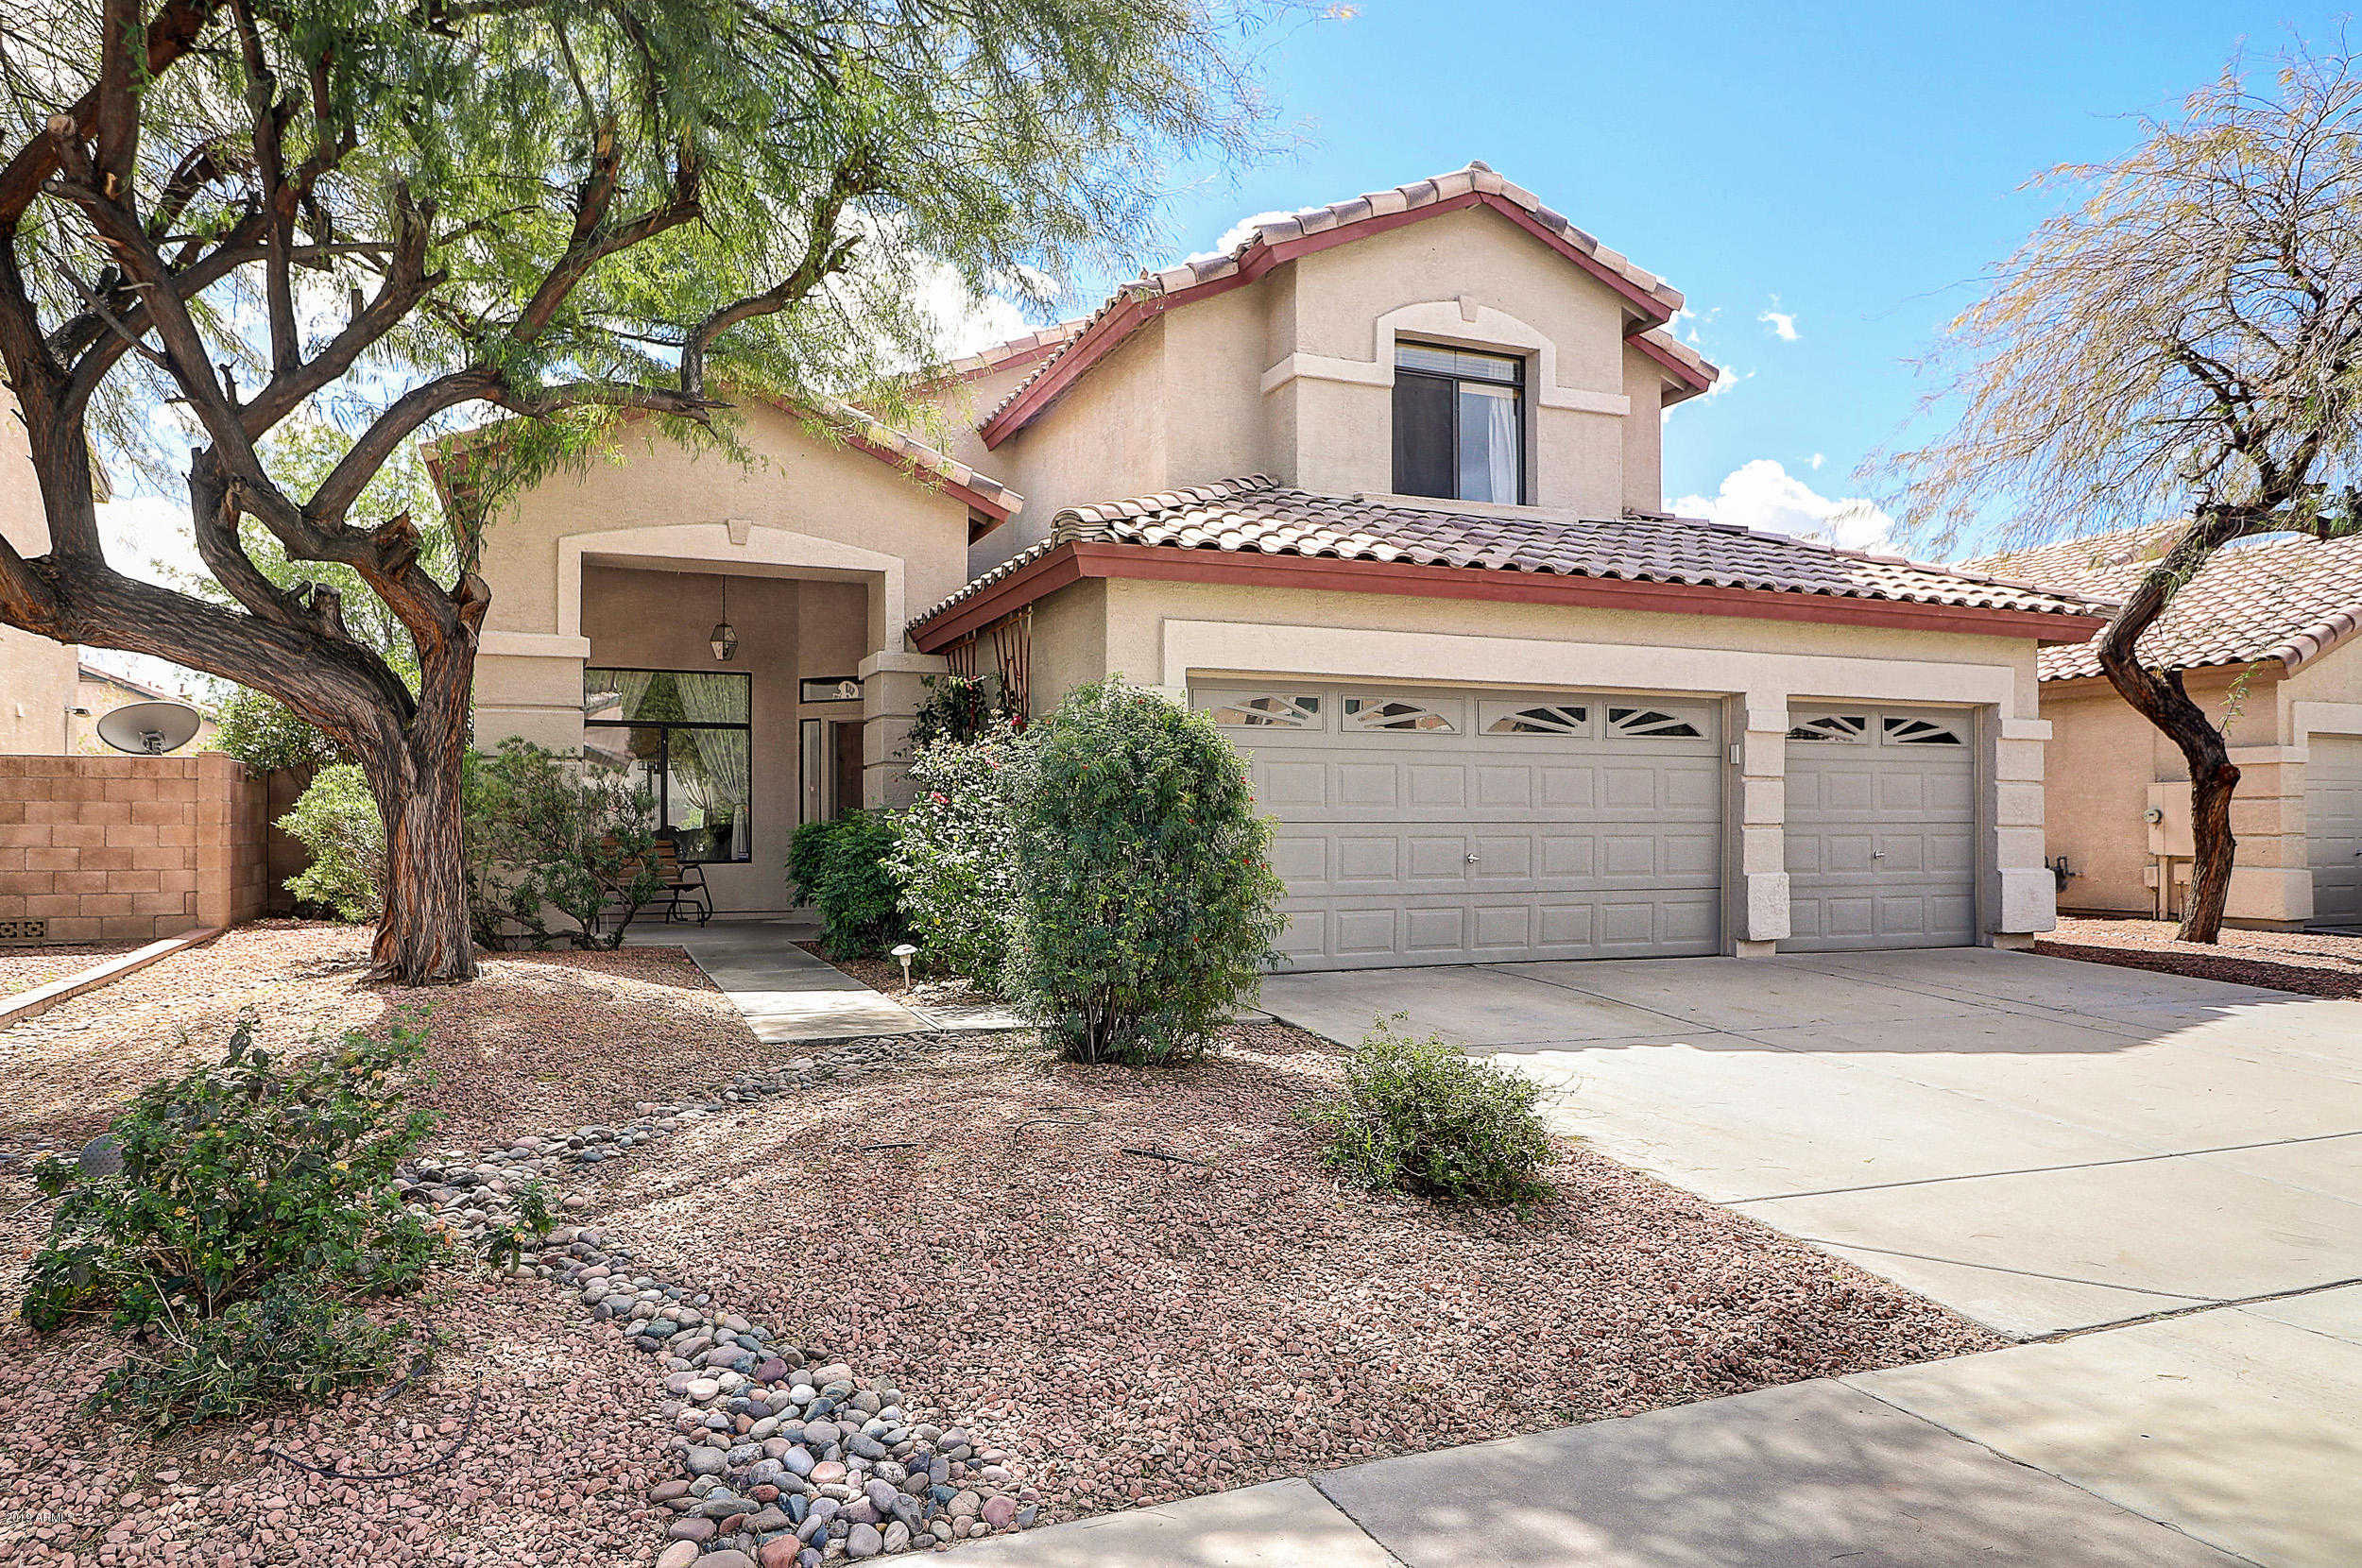 $329,900 - 4Br/3Ba - Home for Sale in Union Hills 1, Glendale